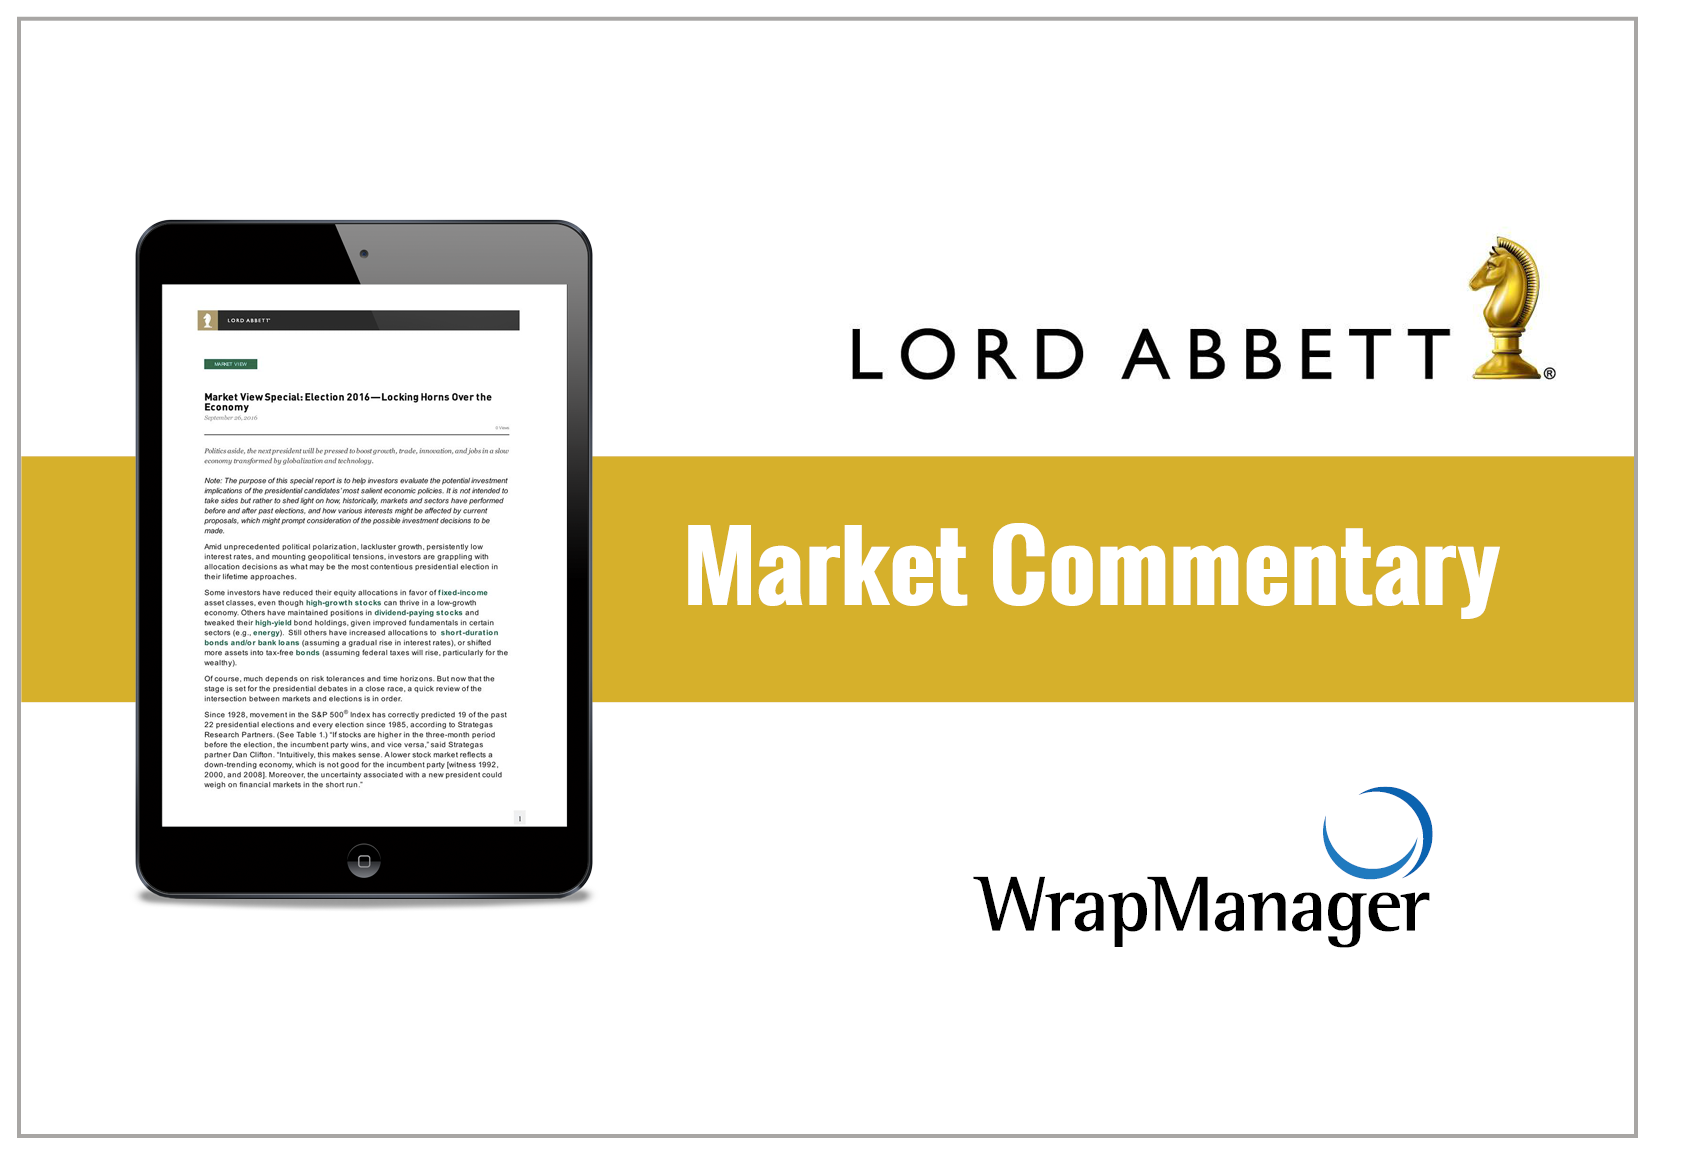 Lord Abbett Shares Reminders on October Deadlines for Retirement Planning